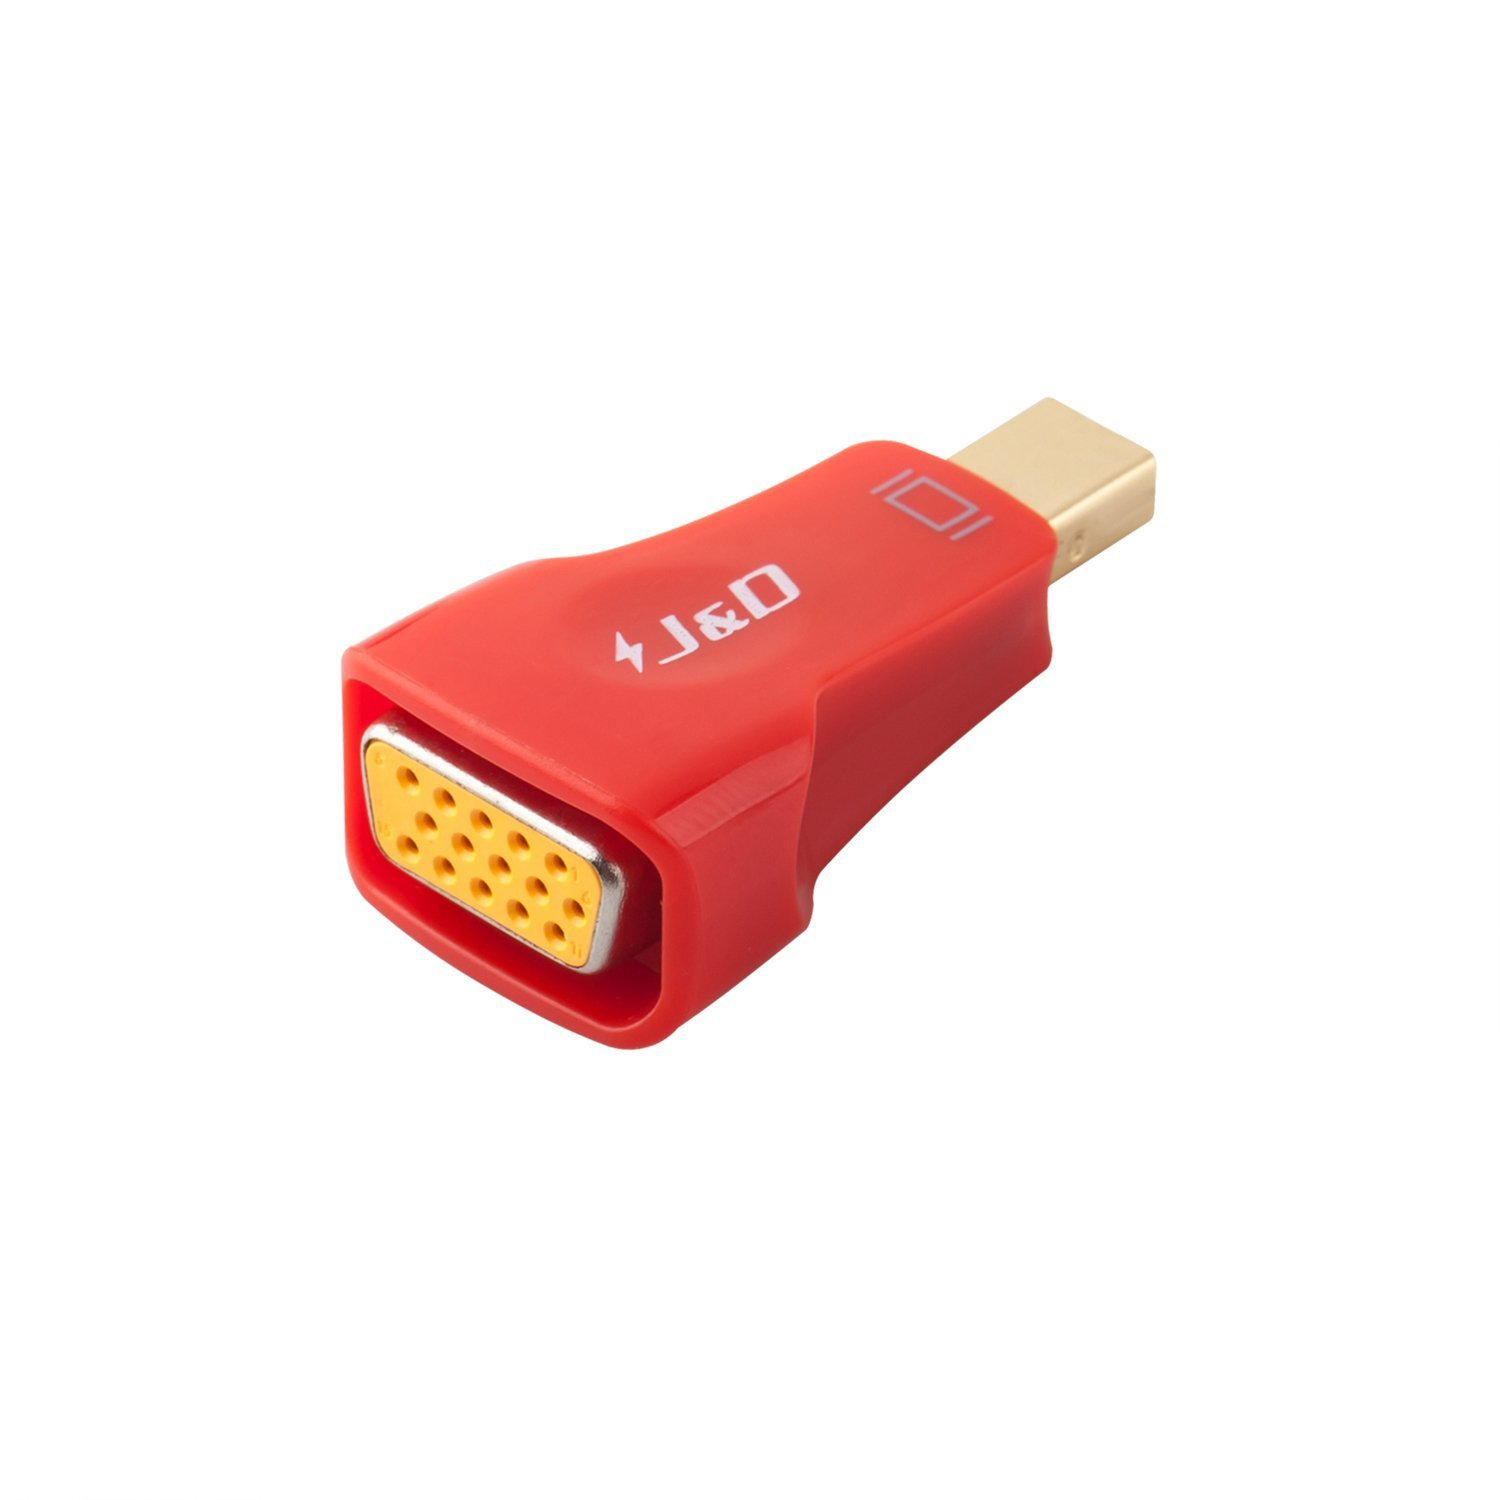 Mini DP to VGA, J&D Gold Plated Mini DisplayPort (Thunderbolt) to VGA Adapter Converter - Male to Female - Red J&D Tech